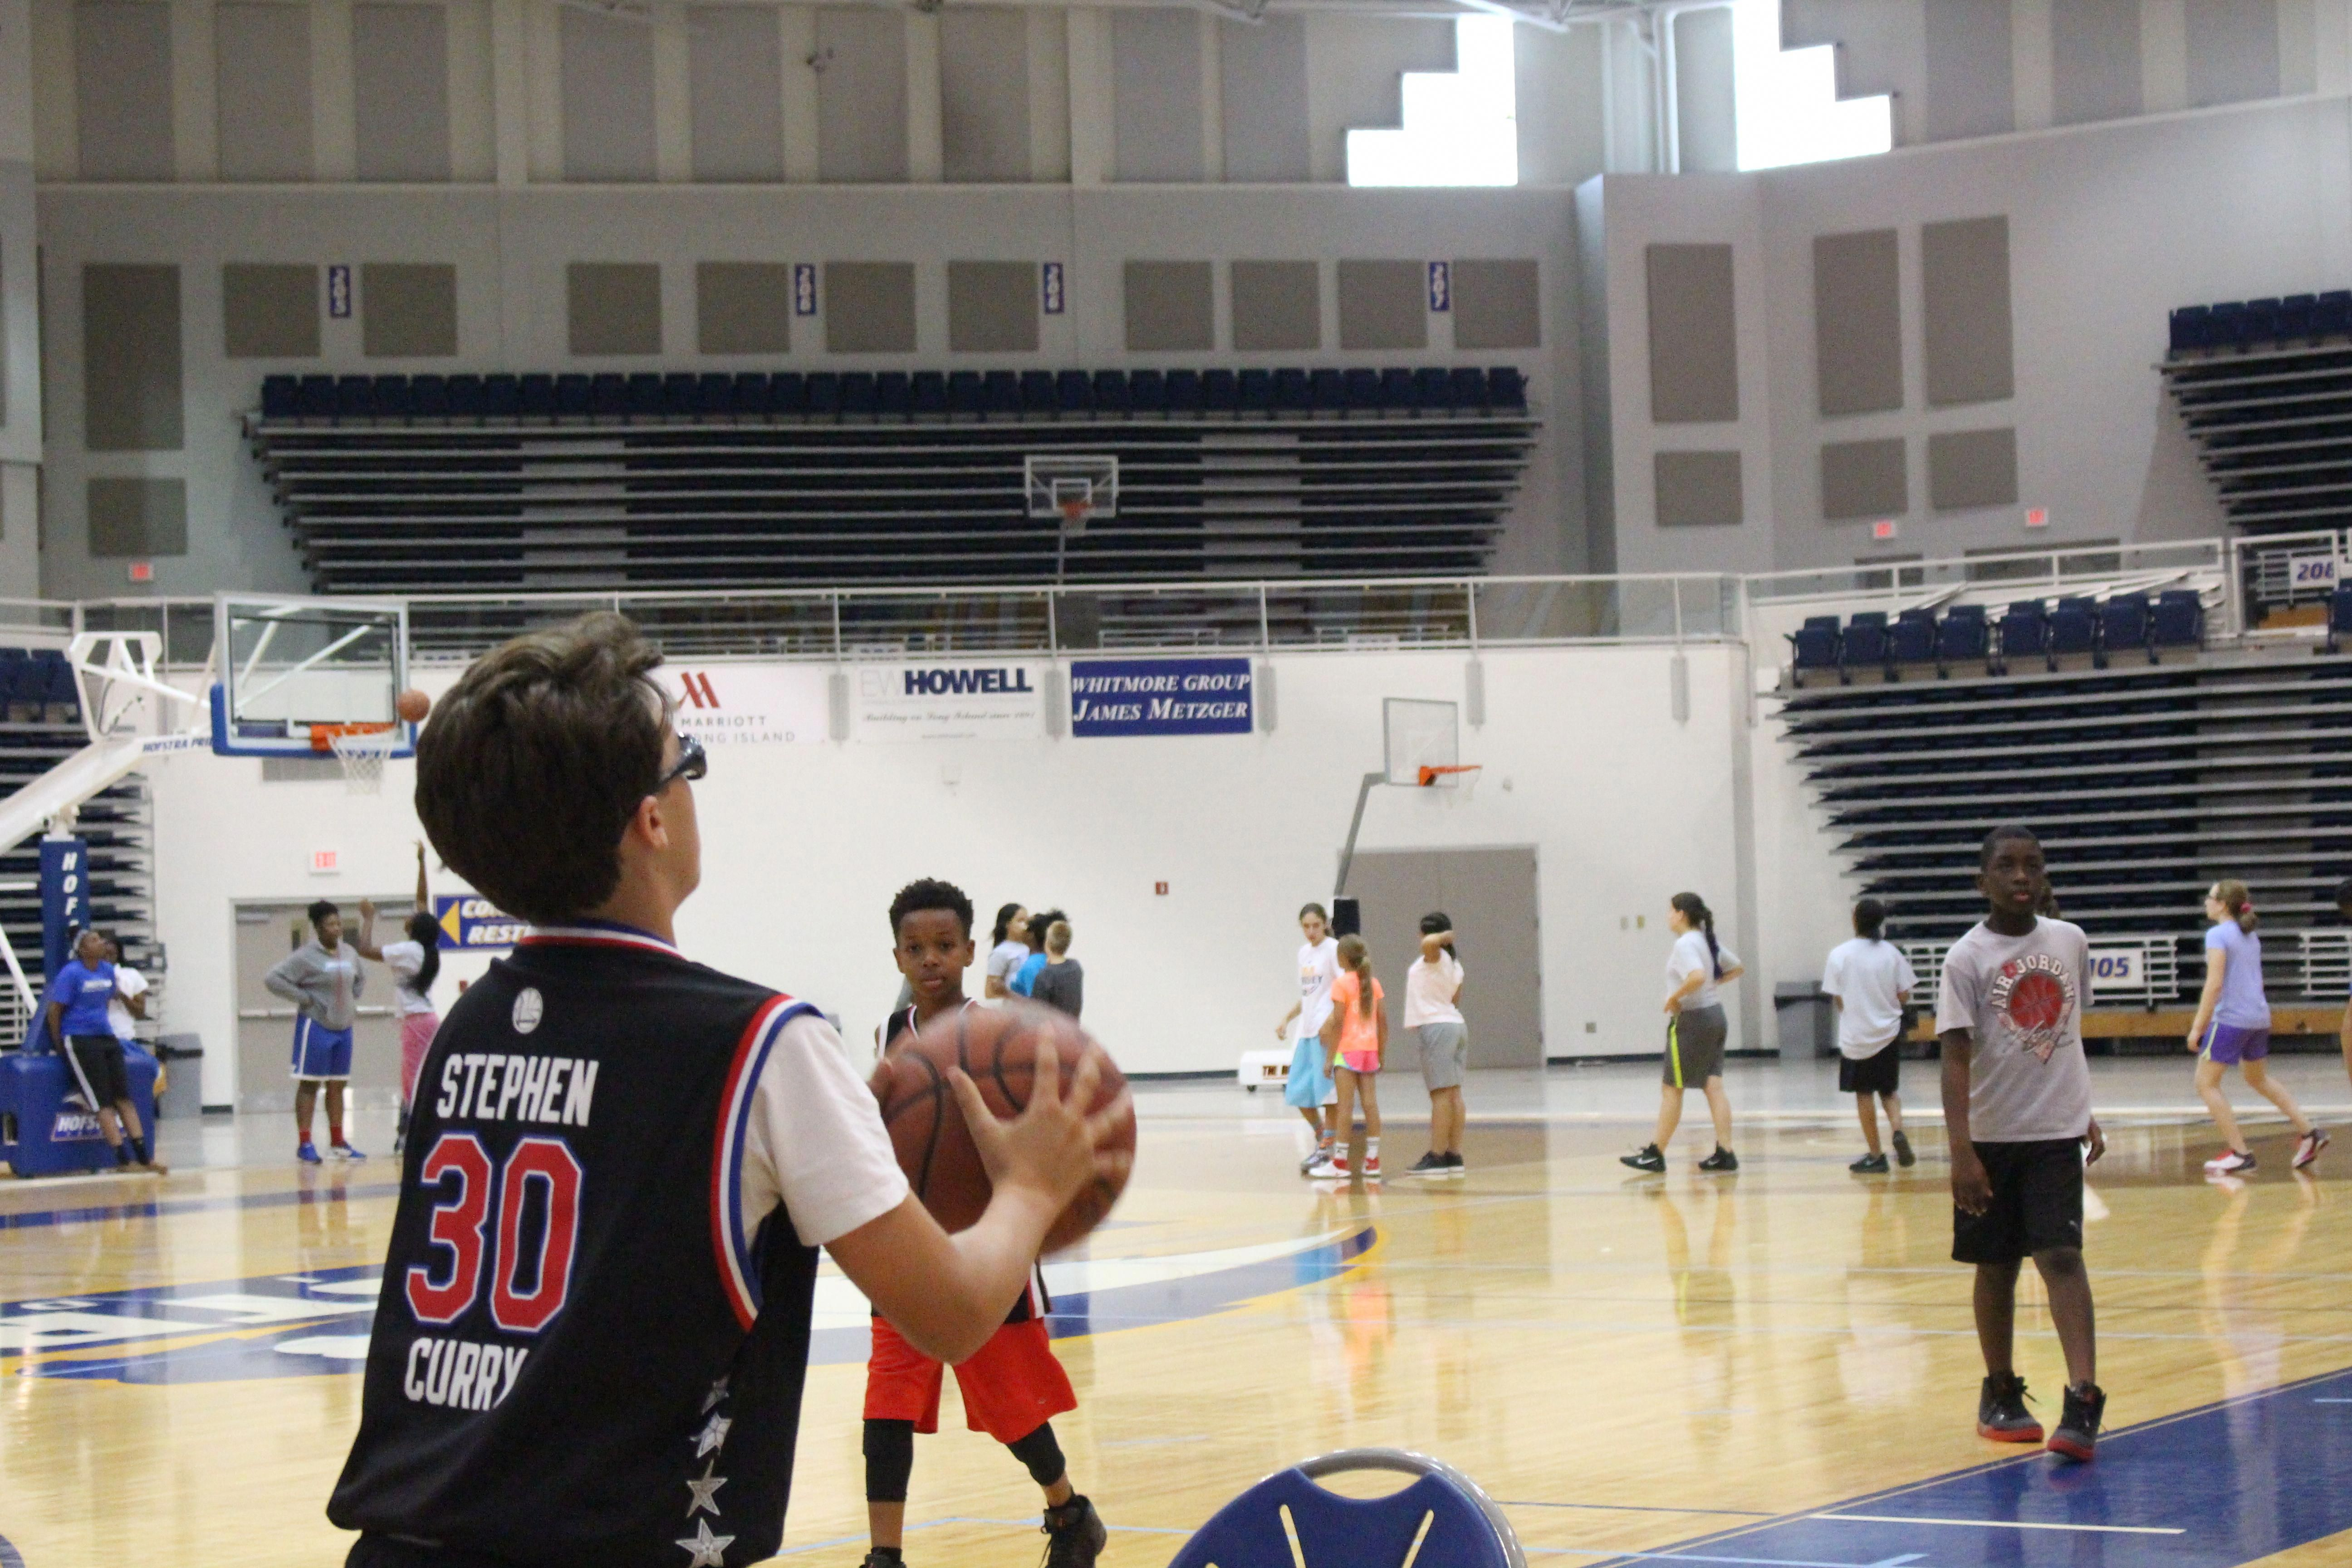 Joe Mihalich S Boys Basketball Camps Are A Slam Dunk Of Fun And Training Your Son Will Love Learning The Fundamenta Basketball Camp Boys Basketball Basketball